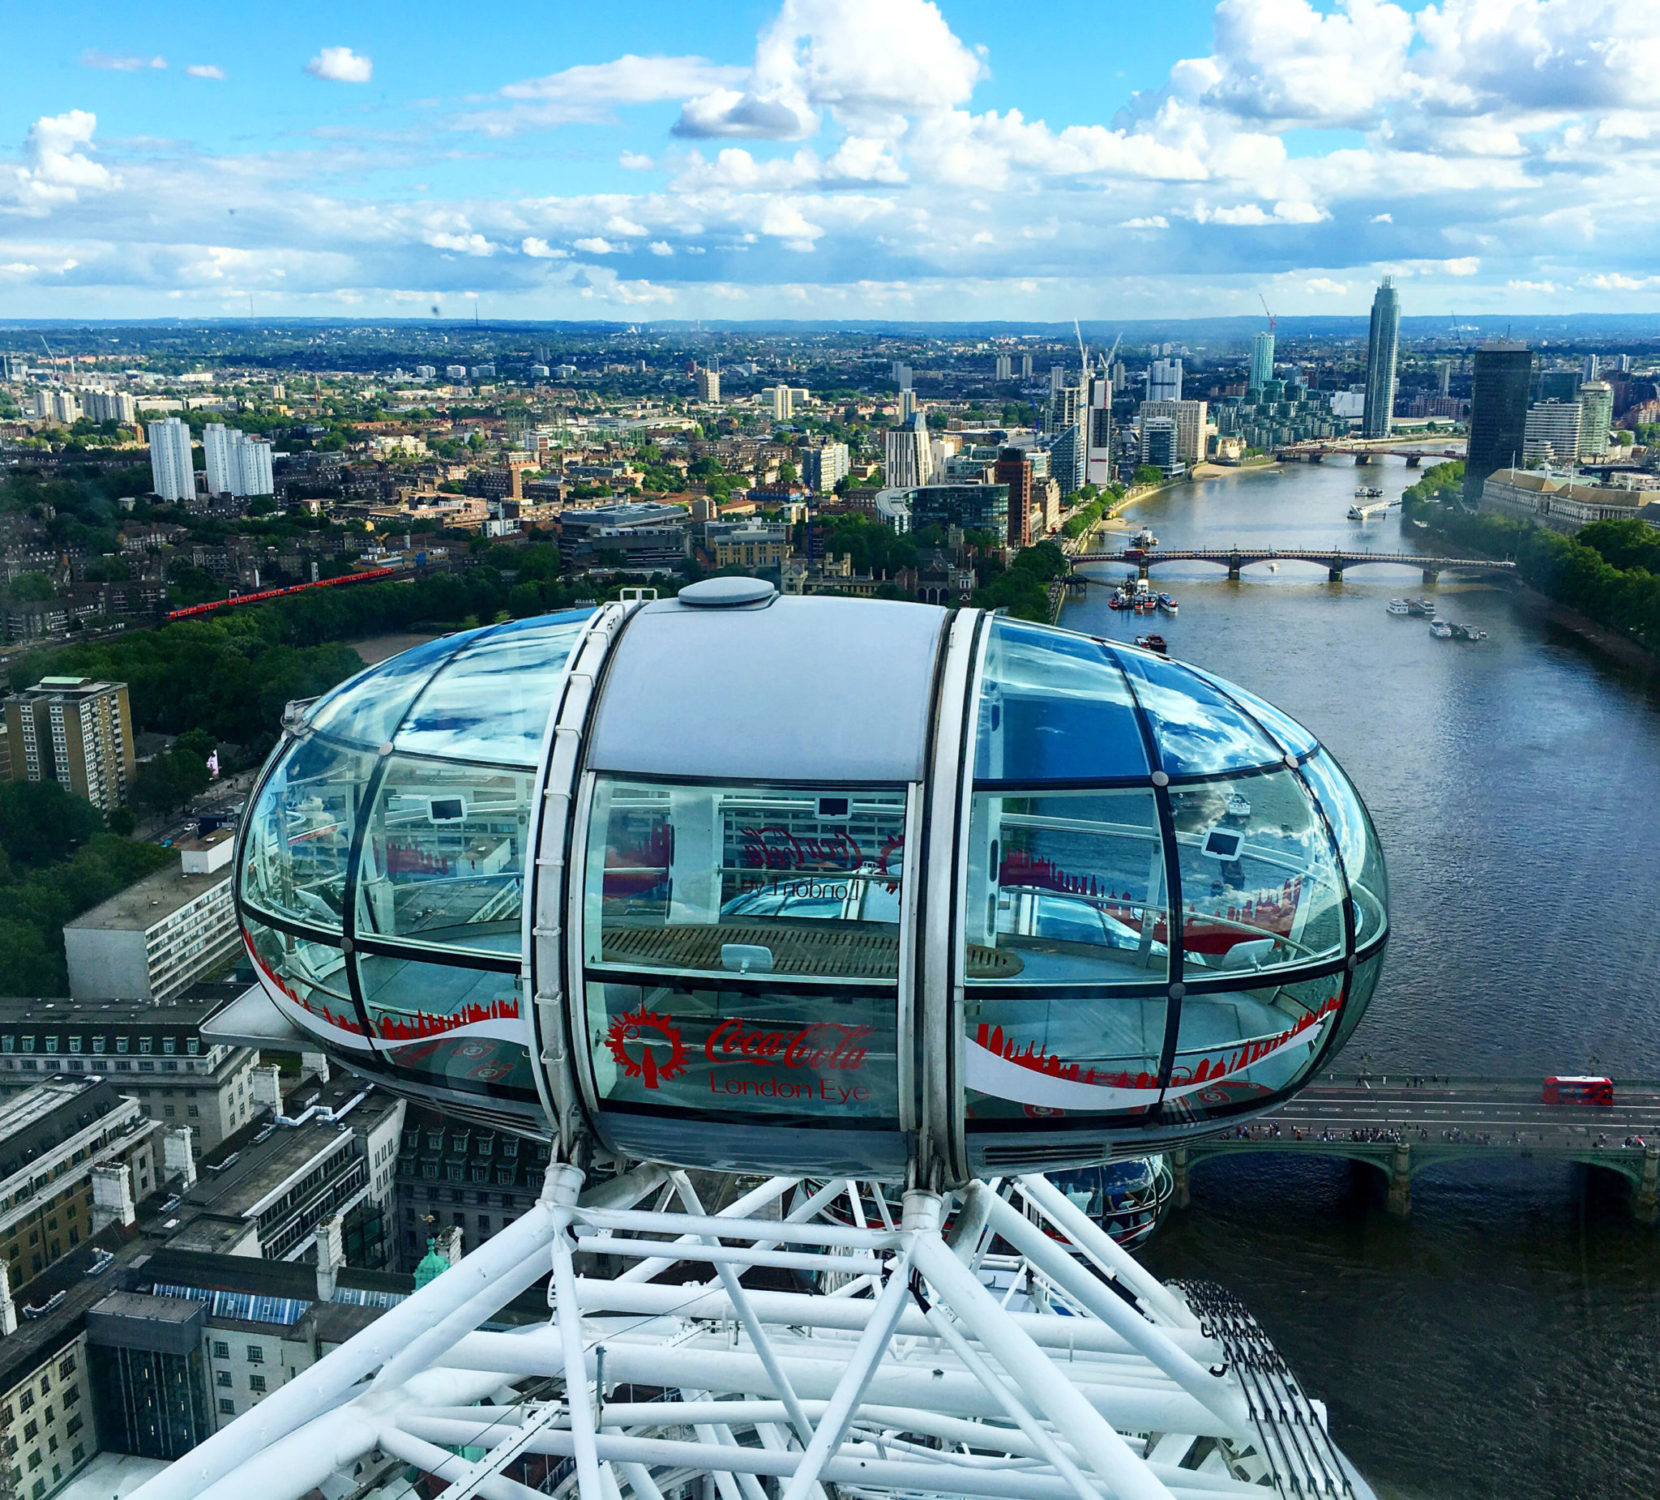 style synopsis on the London Eye